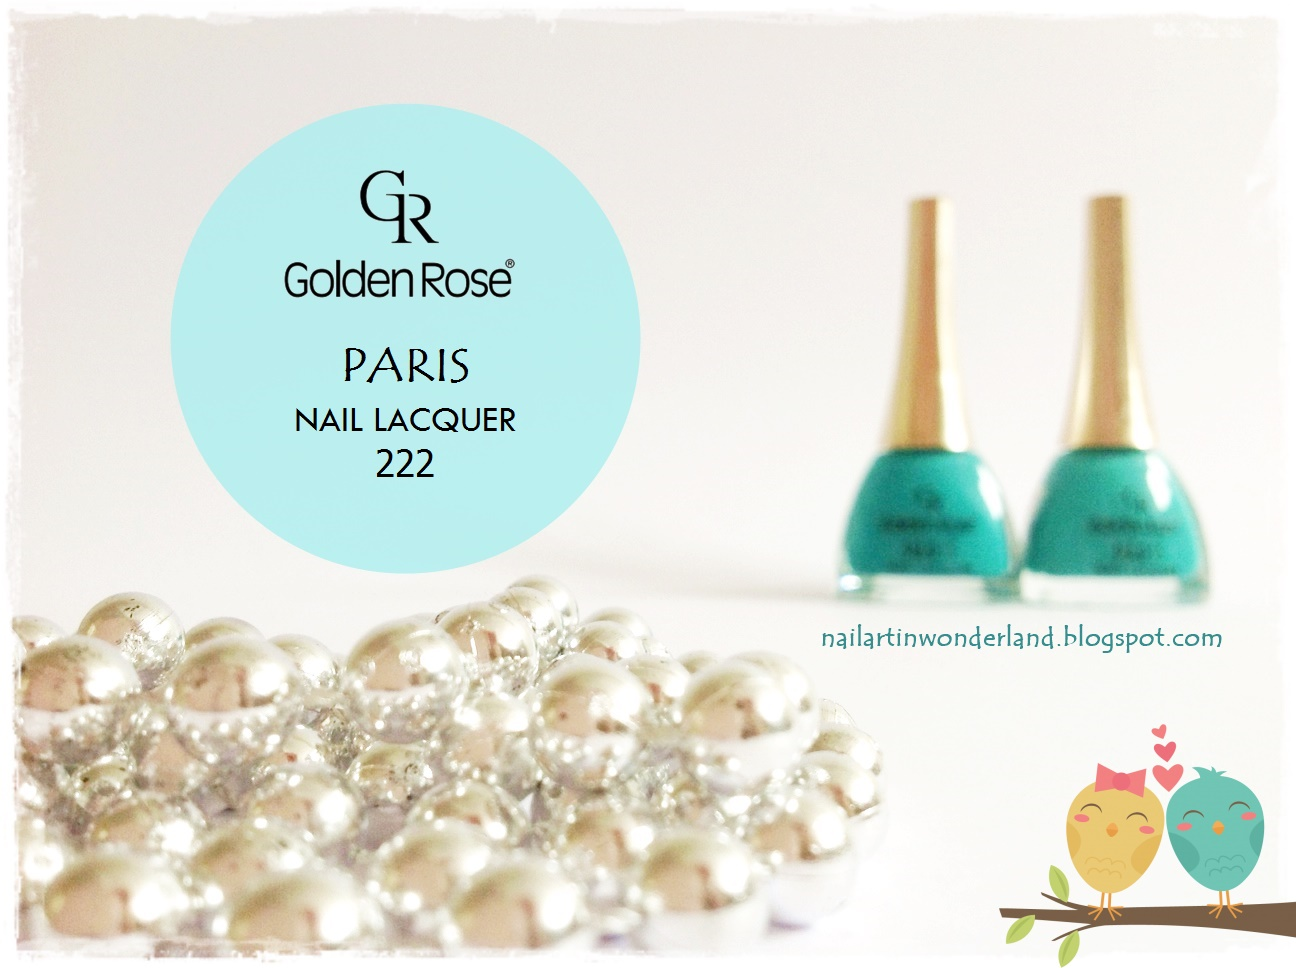 Golden Rose Paris 222